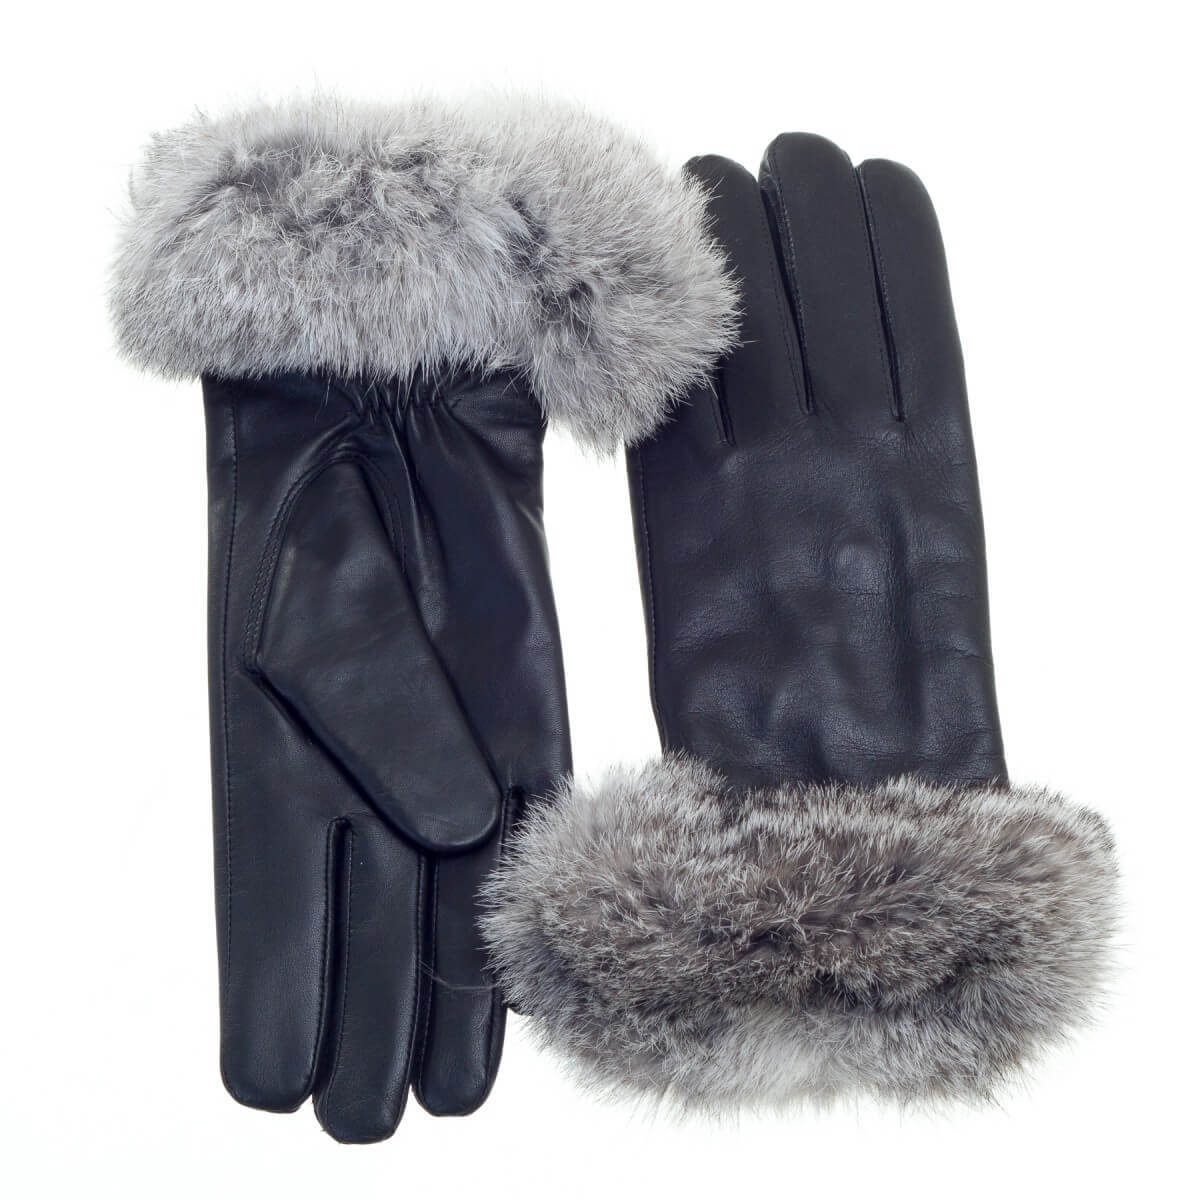 Leather Glove with Rabbit Fur Cuff